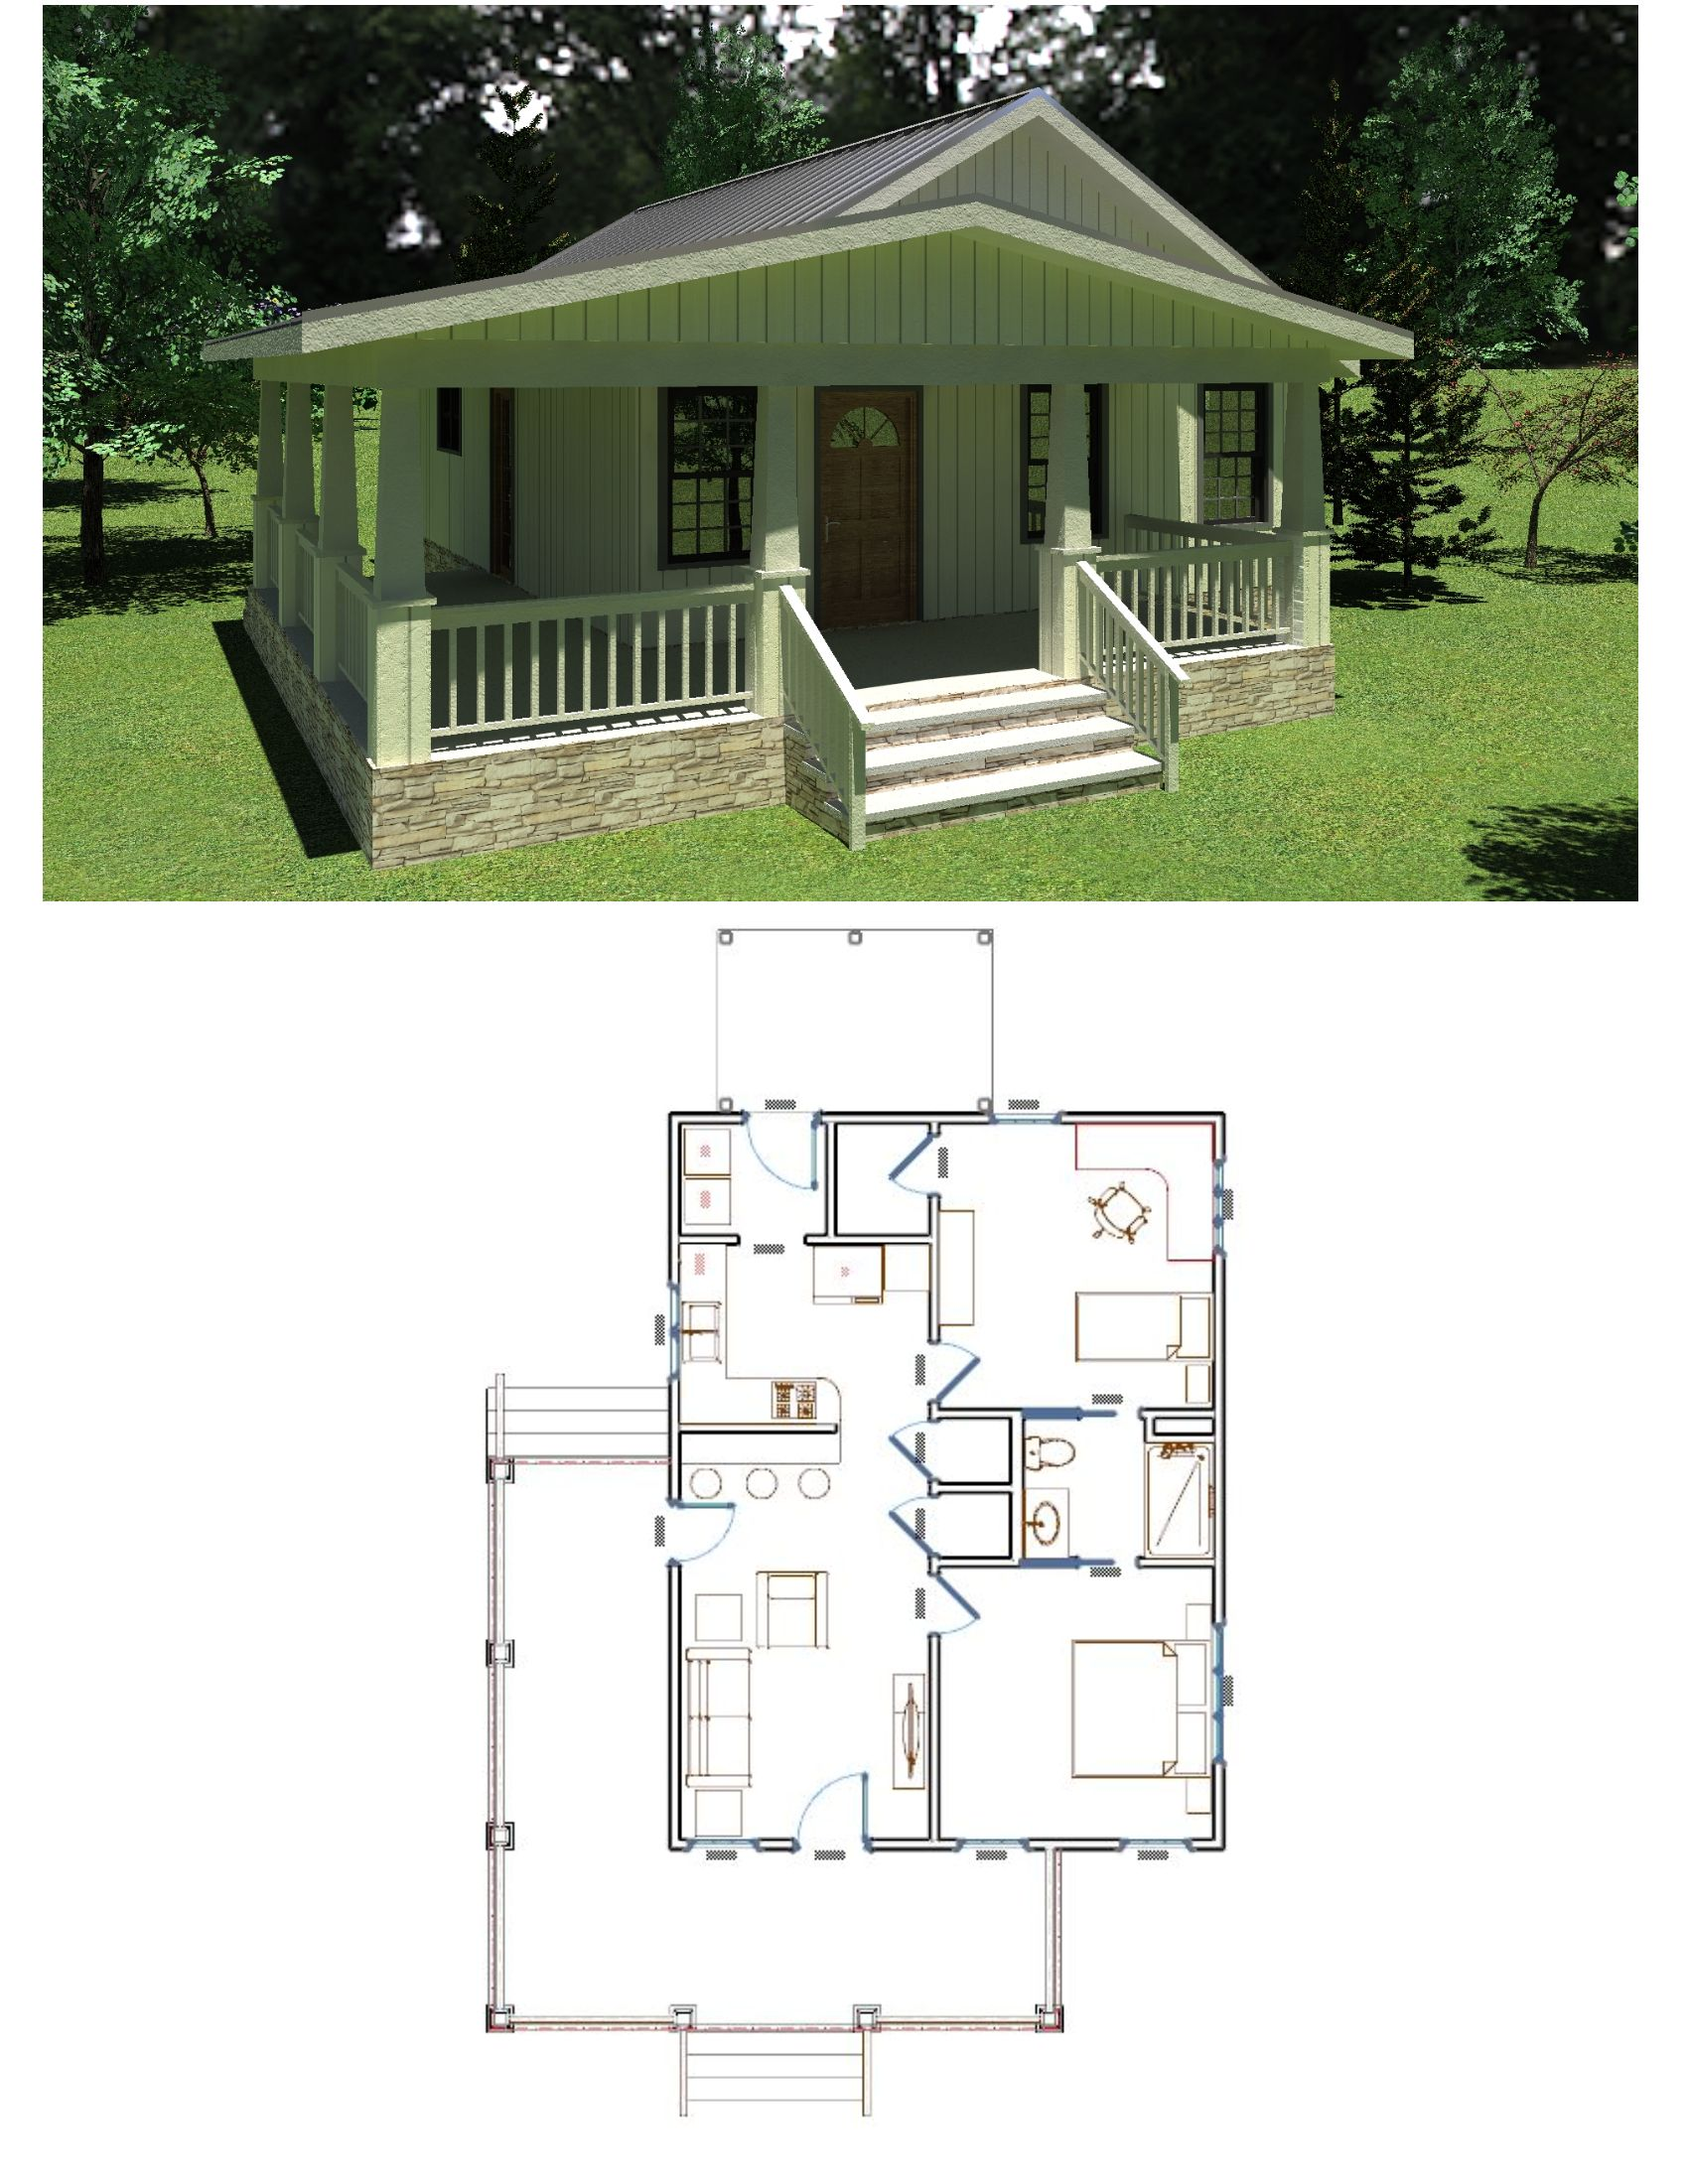 24 X32 Living Area 768 Sf Simple 2 Bed 1 Bath Floor Plan That I Come Up With It Still Needs Some Refining But Ha Cottage House Plans Small House House Plans